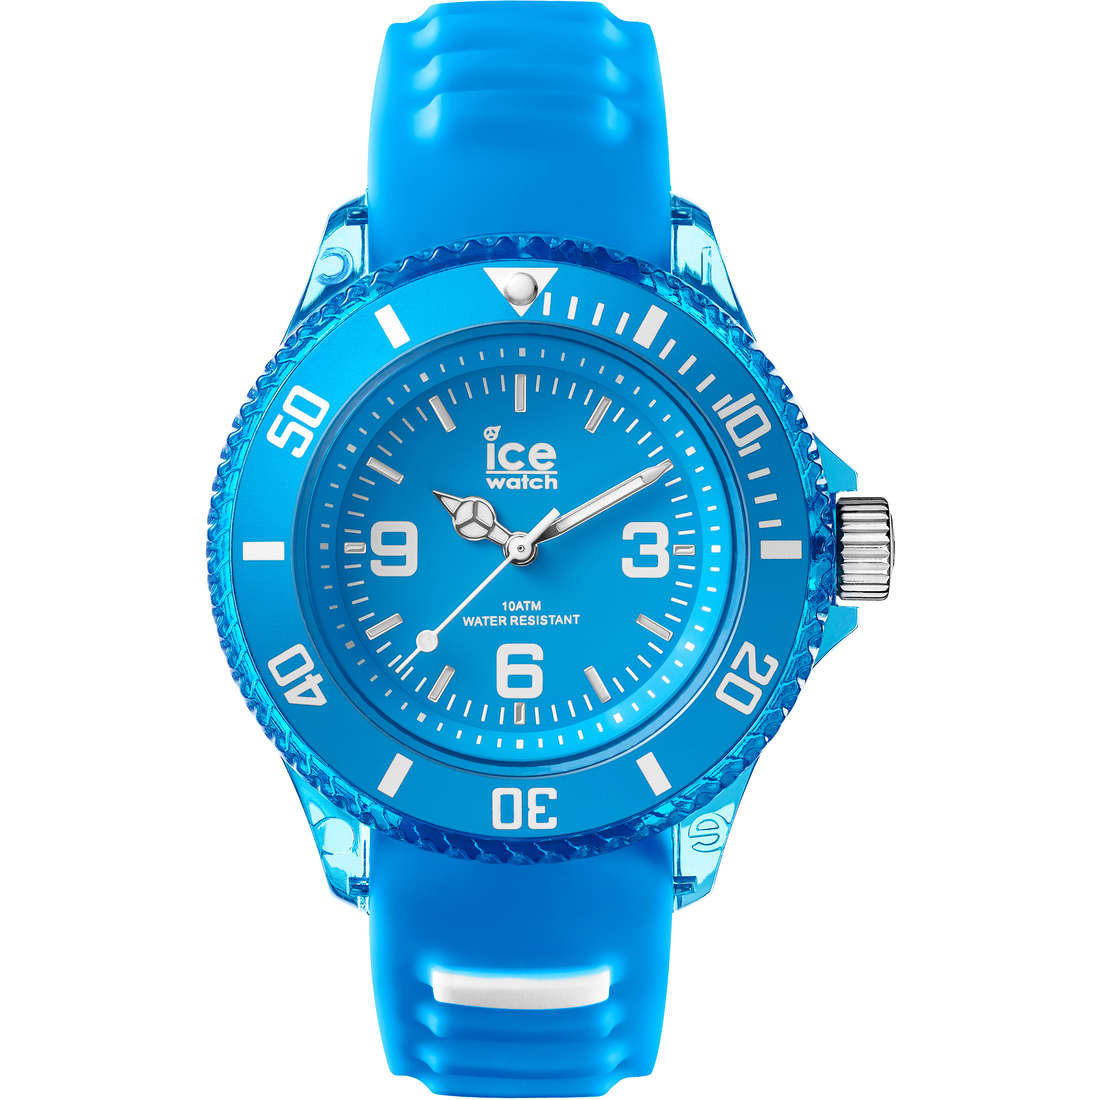 orologio solo tempo unisex ICE WATCH Ice Acqua IC.AQ.MAL.S.S.15